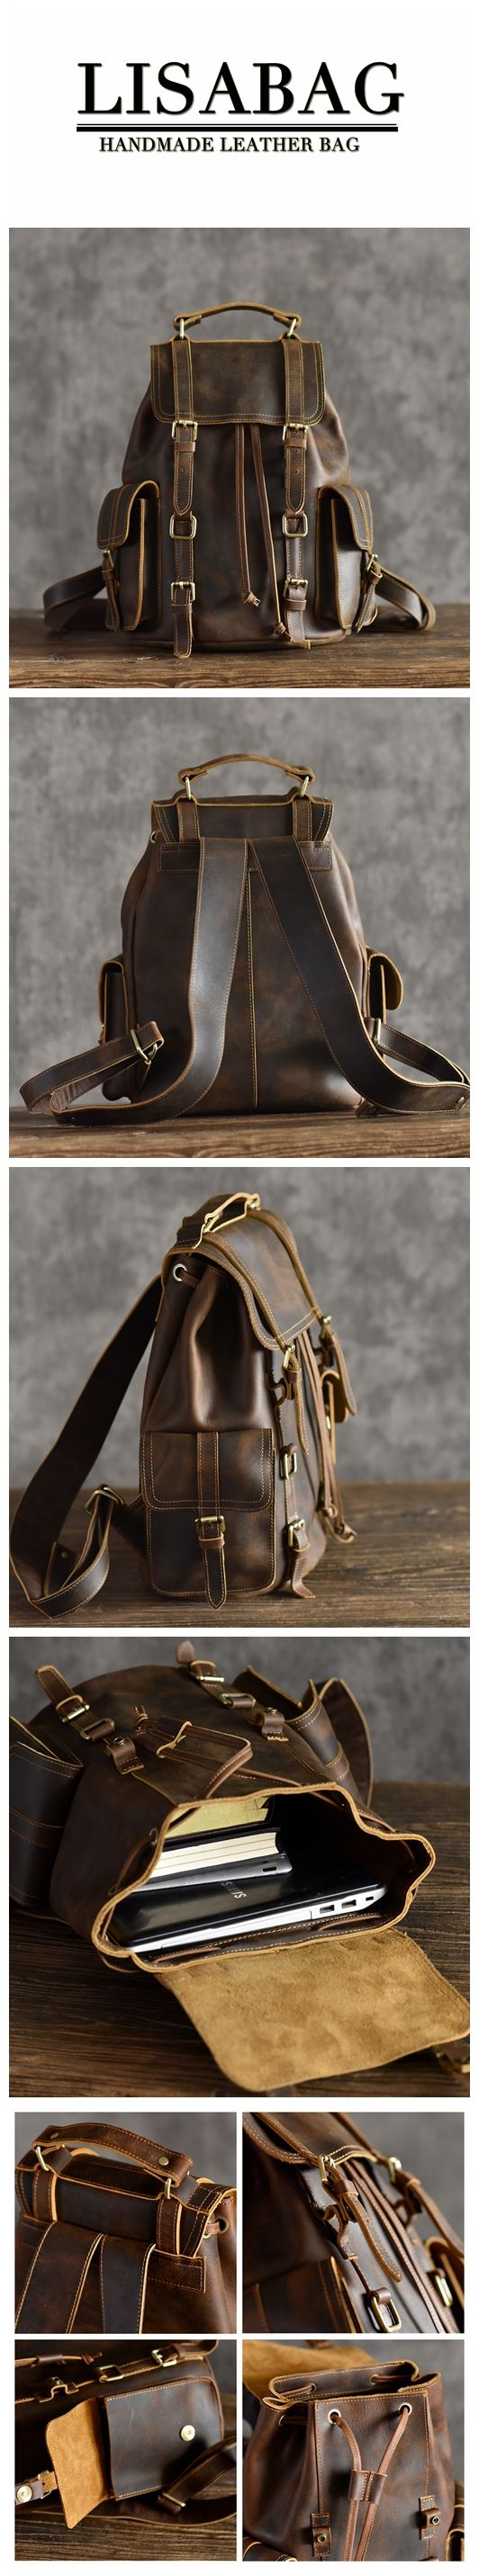 Vintage Leather Backpack Cool Hiking Rucksack Casual Leather Daypack in  Dark Coffee MT15 - Dark Coffee   Shopping Online   Pinterest   Bags,  Backpacks and ... d98a6951bf